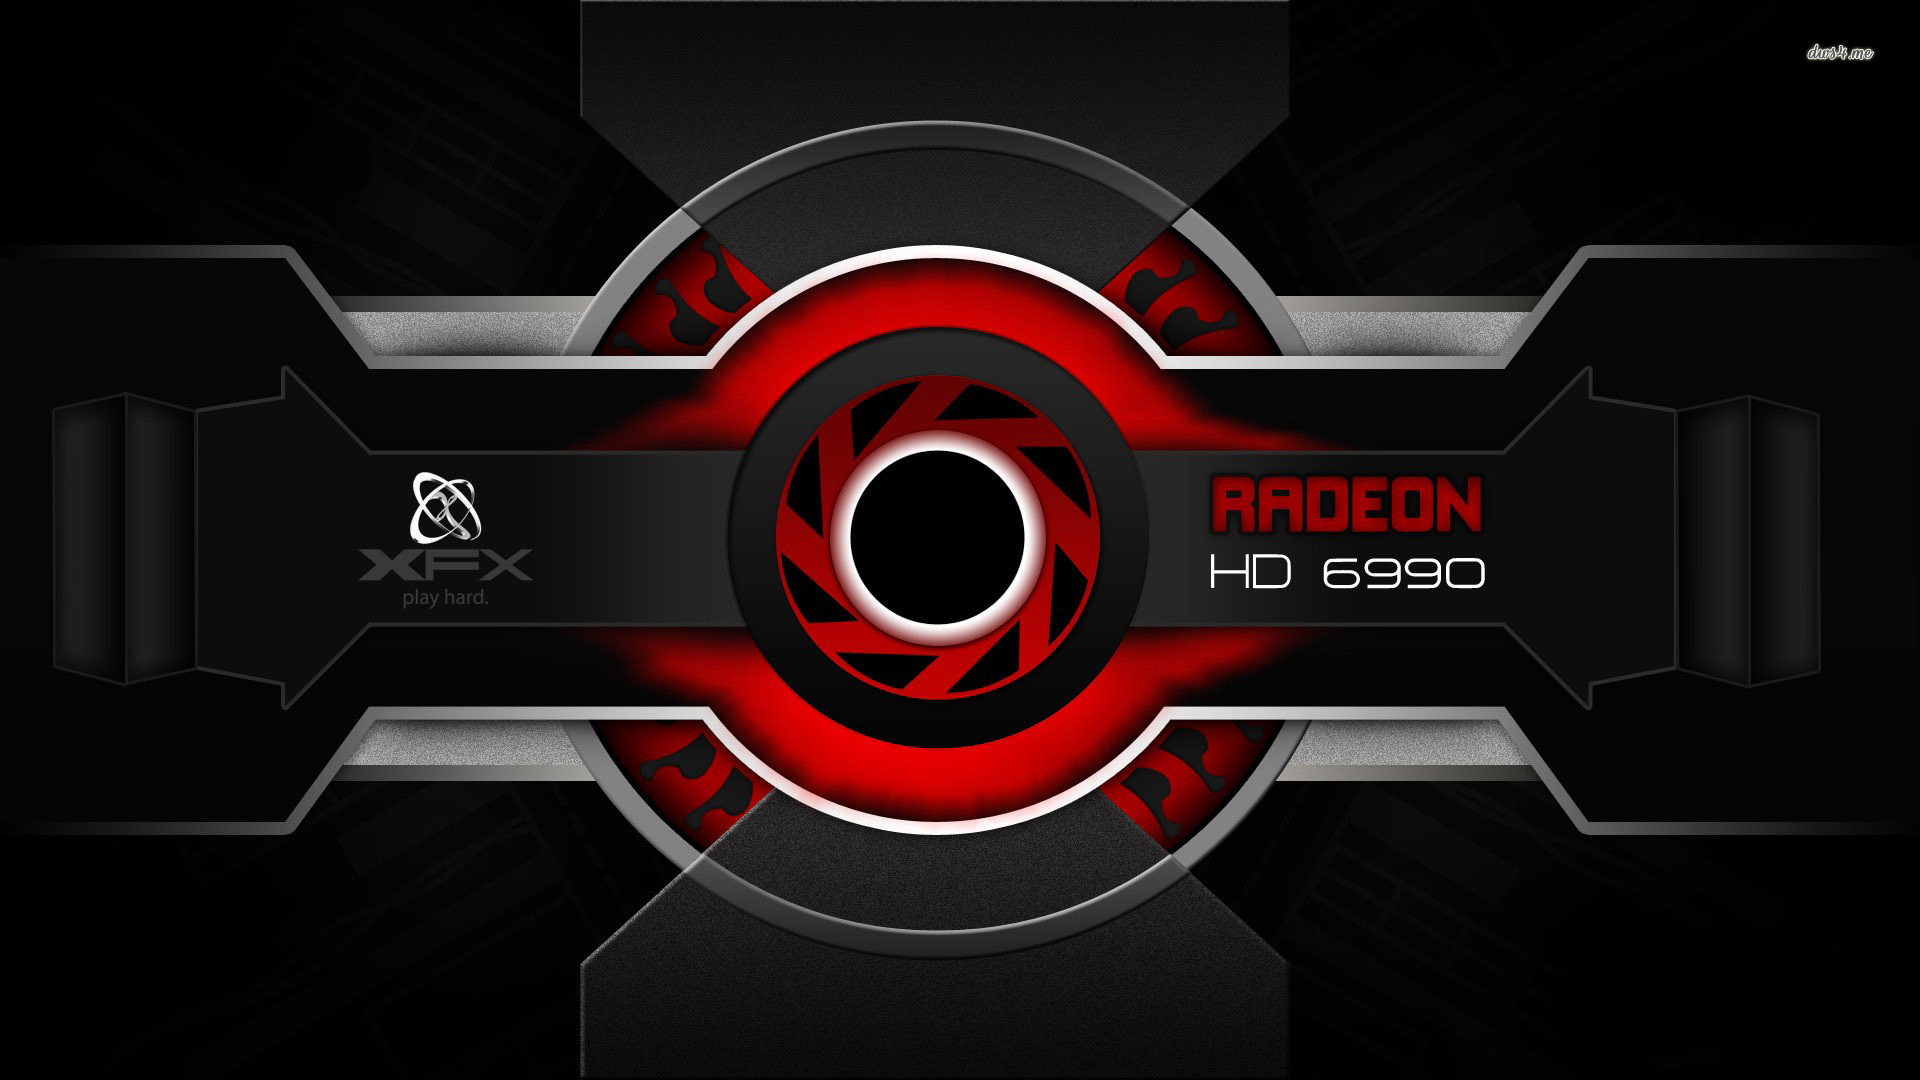 Amd crossfire wallpaper